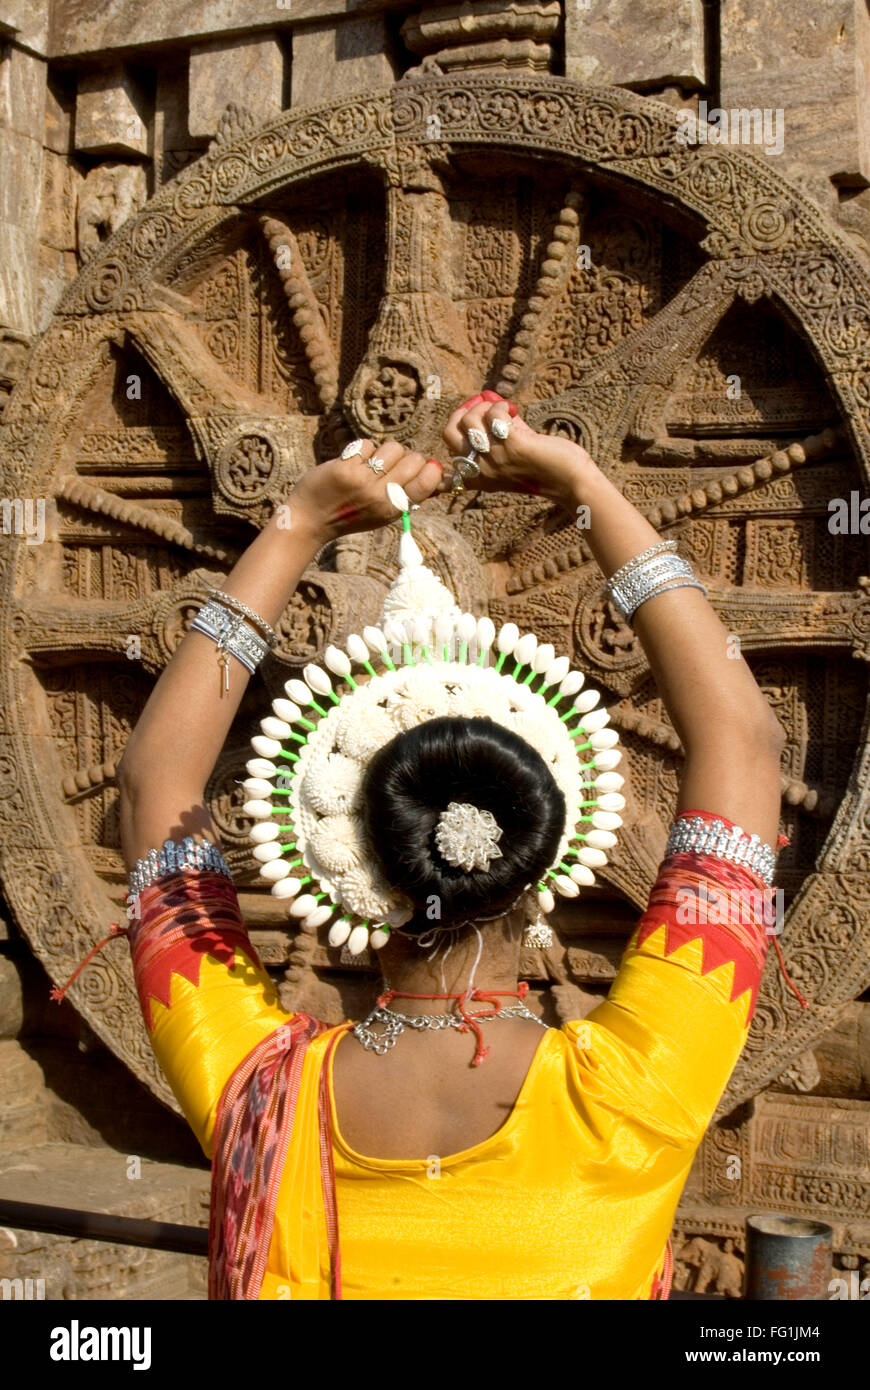 Odissi dancers strike pose re enacts Indian myths such Ramayana front iconic Sun Chariot Sun temple complex Konarak - Stock Image